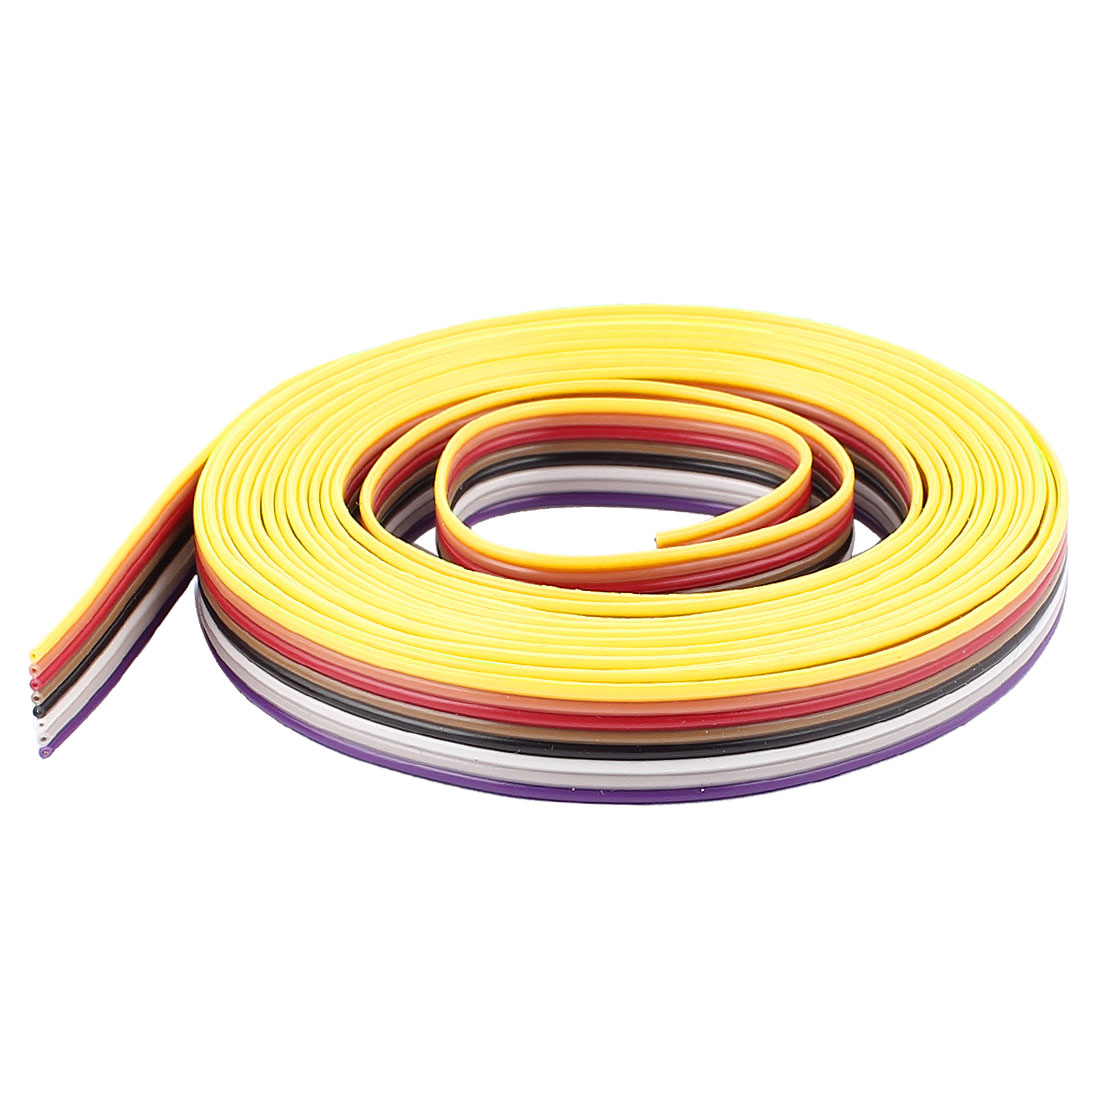 10ft 8 Pin Conductor Rainbow Color IDC Flat Ribbon Cable 1.27mm